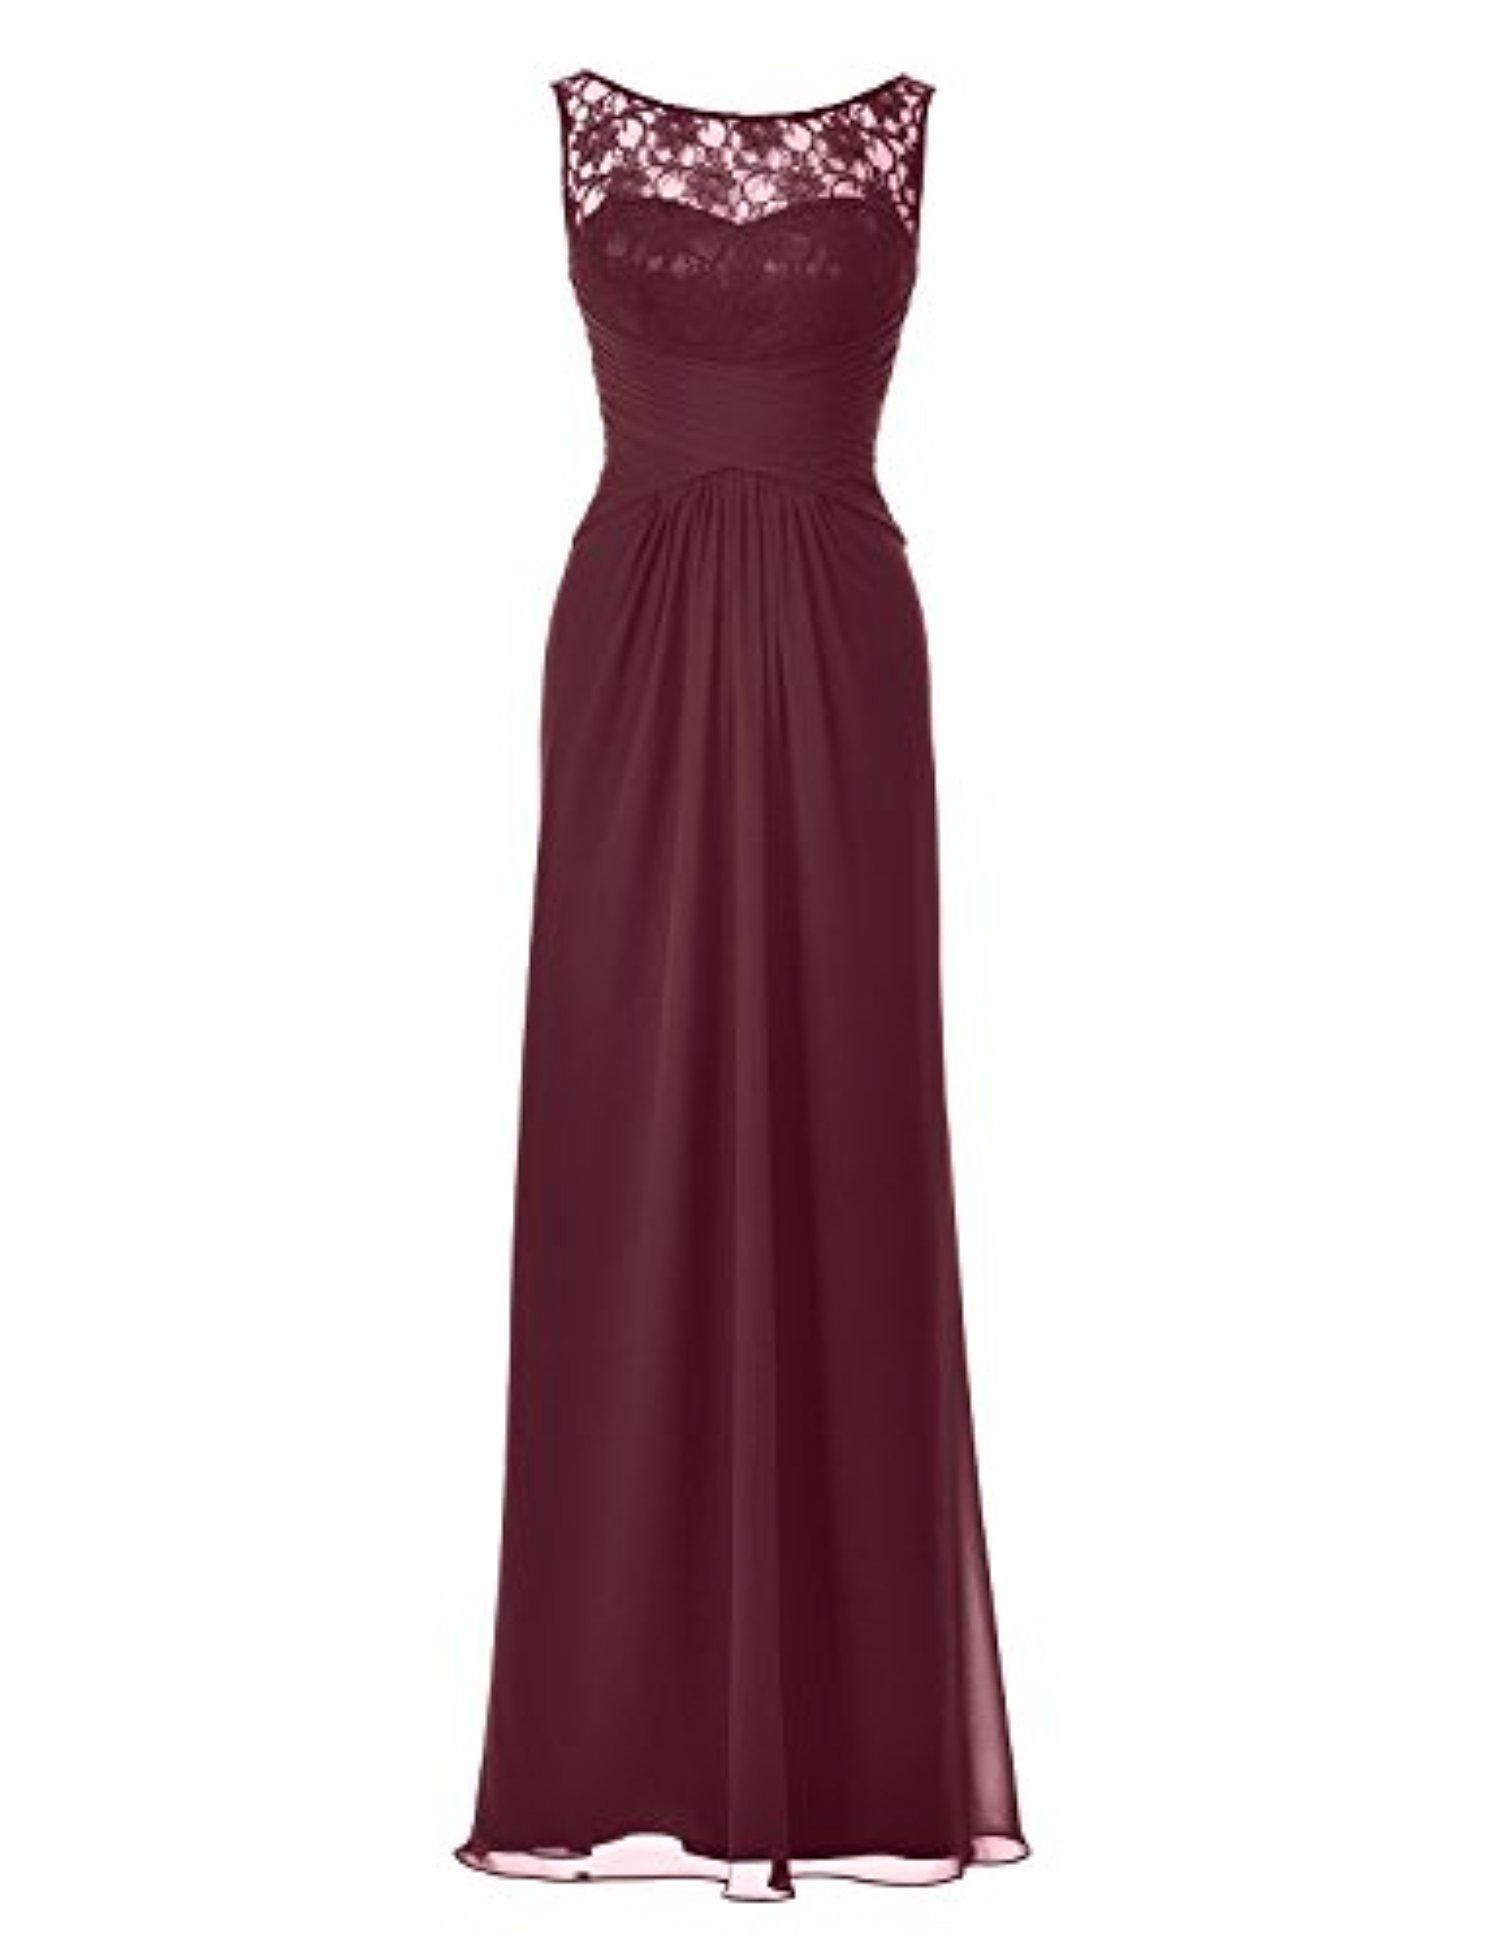 Remedios Lace Chiffon Evening Dress Bridal Party Long Sleeveless Bridesmaid Gown,Burgundy,US12 - Brought to you by Avarsha.com